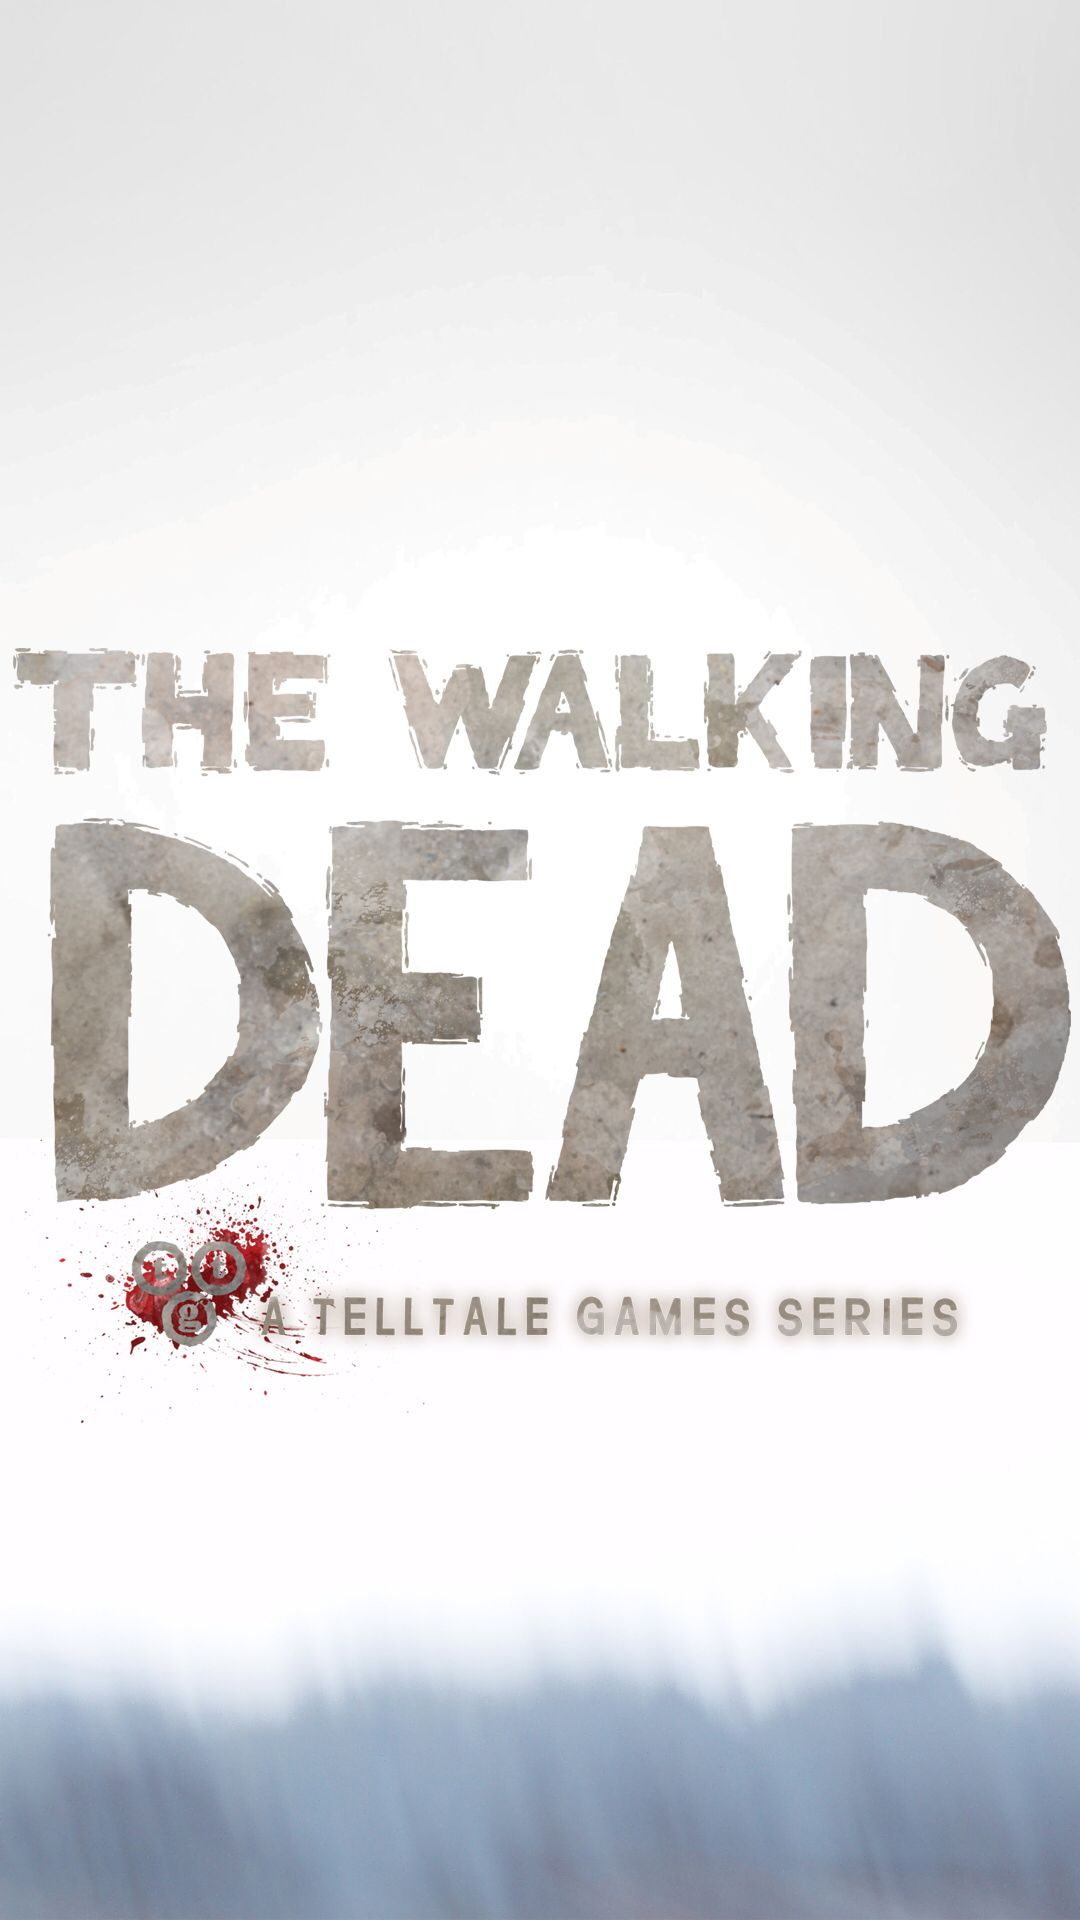 the walking dead game wallpaper iphone 6 plus | walking dead -the